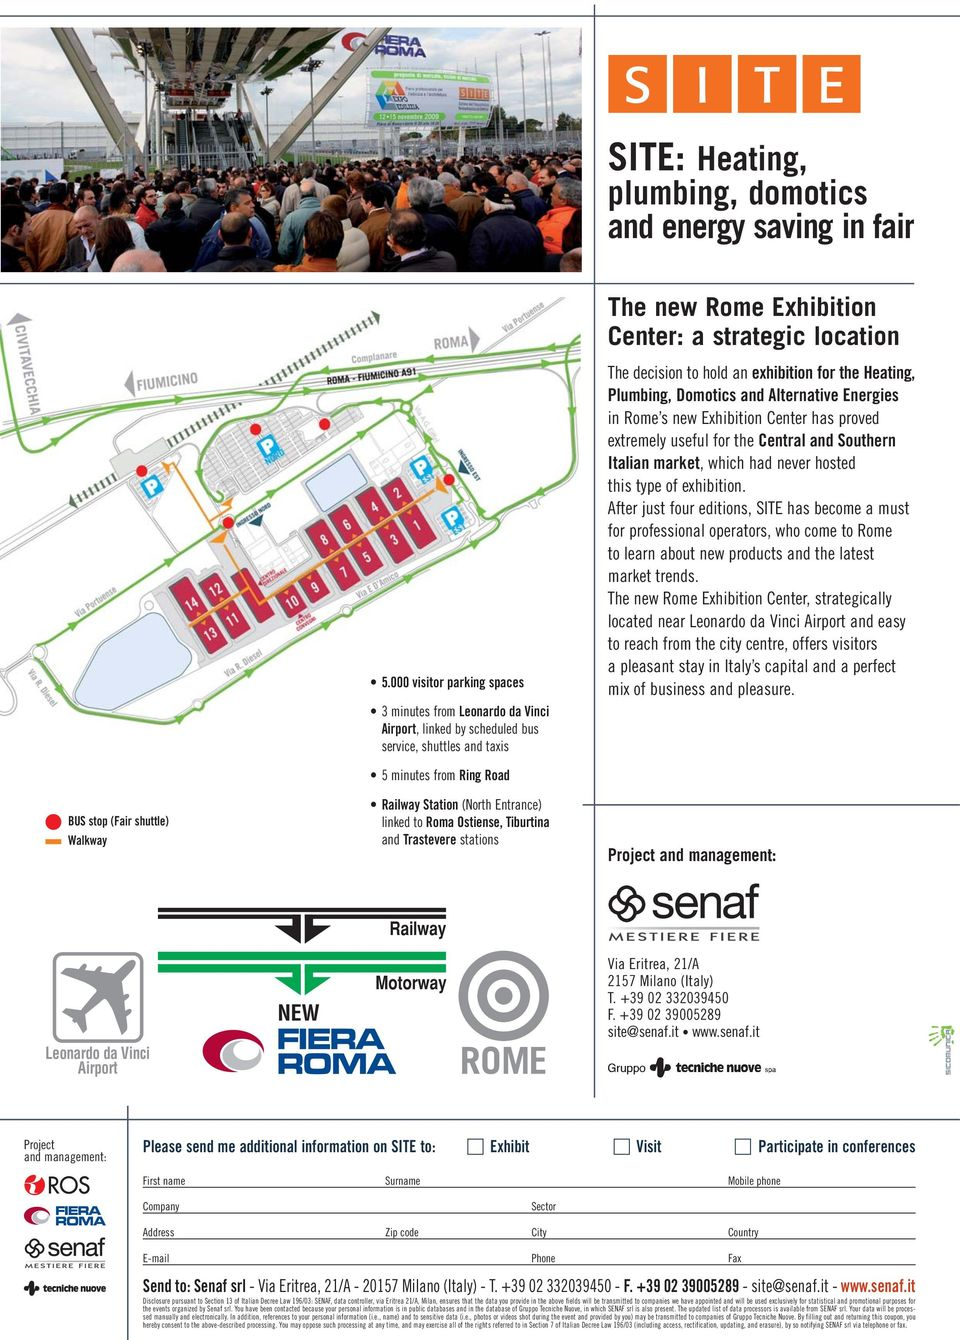 Alternative Energies in Rome s new Exhibition Center has proved extremely useful for the Central and Southern Italian market, which had never hosted this type of exhibition.